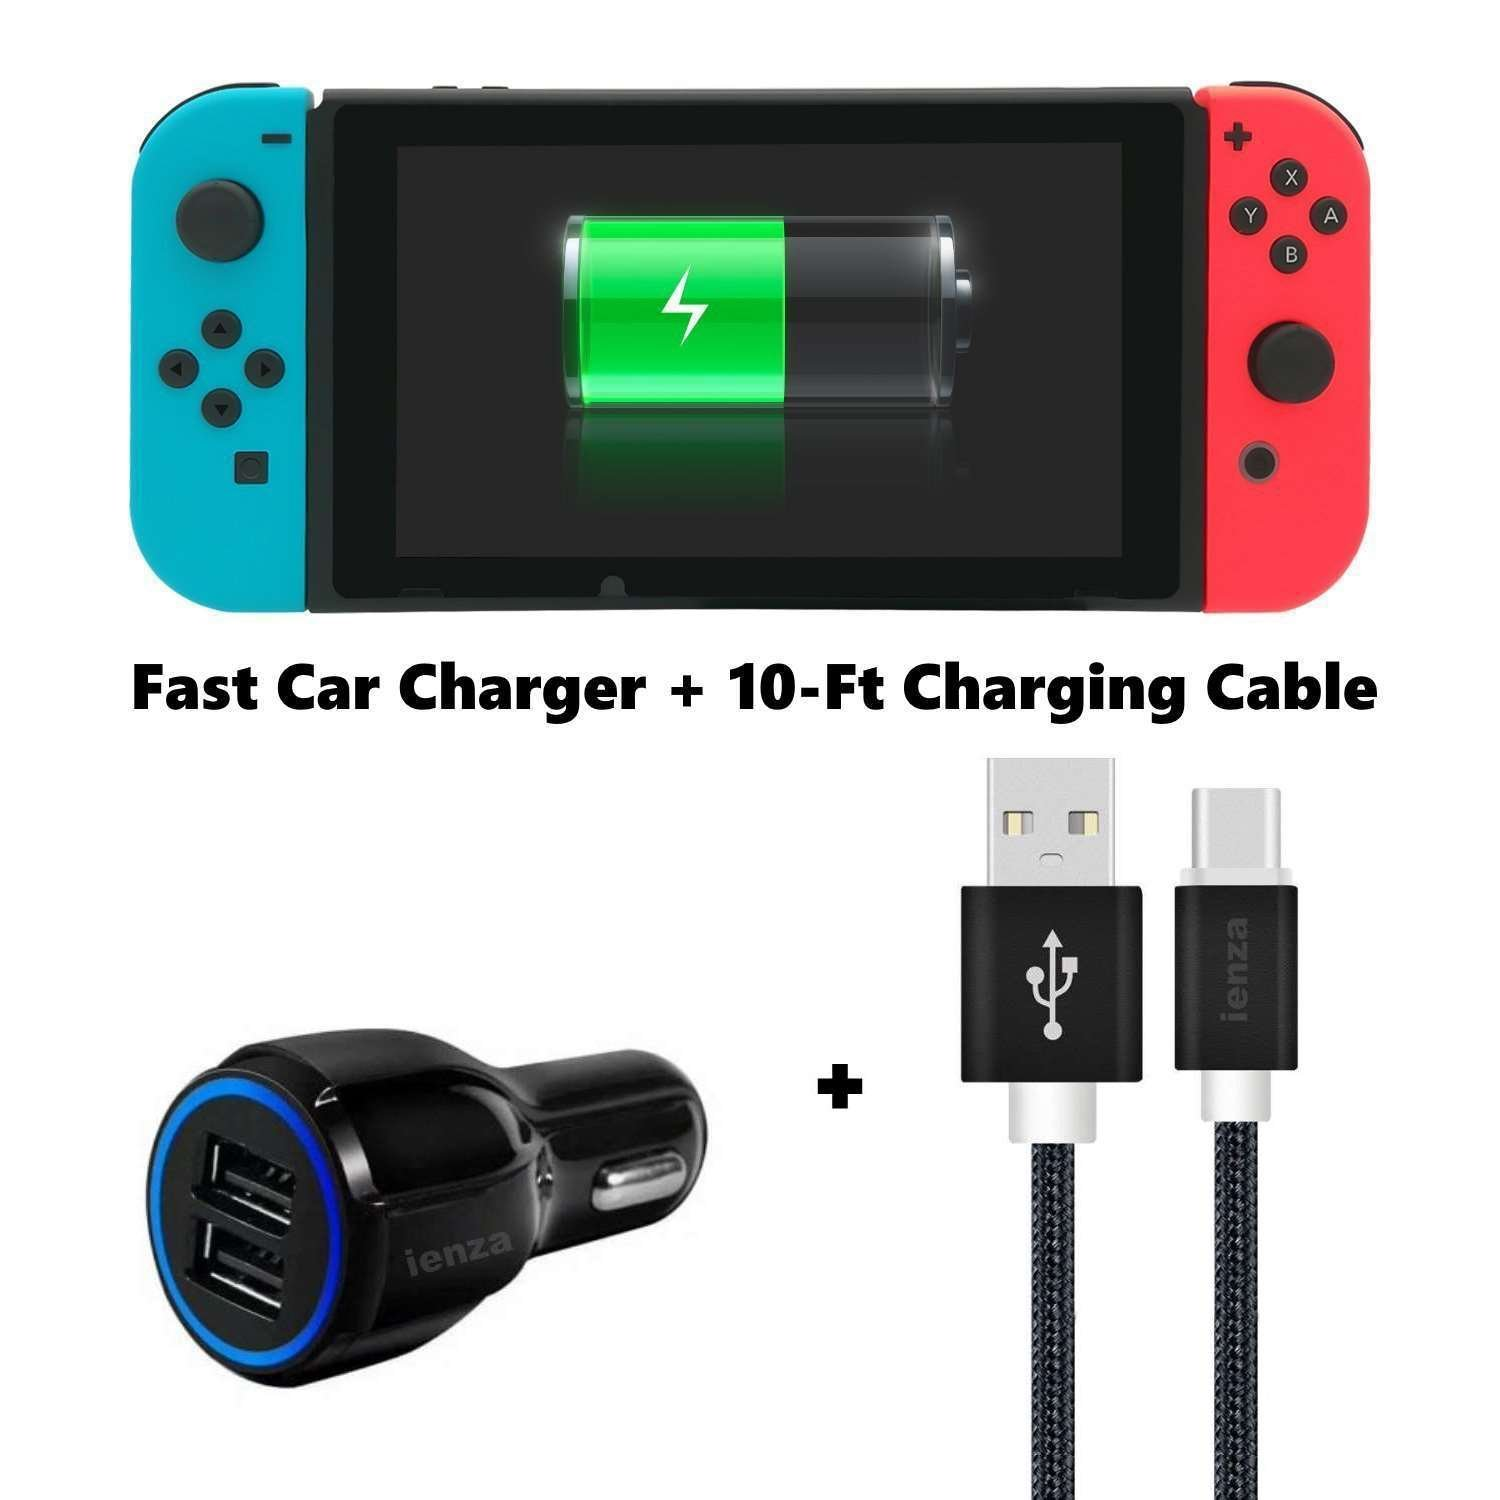 ienza Nintendo Switch Car Charger Kit - Long 10-FT USB Type C to A Charger Cable Cord with Two-Port Fast Car Charger